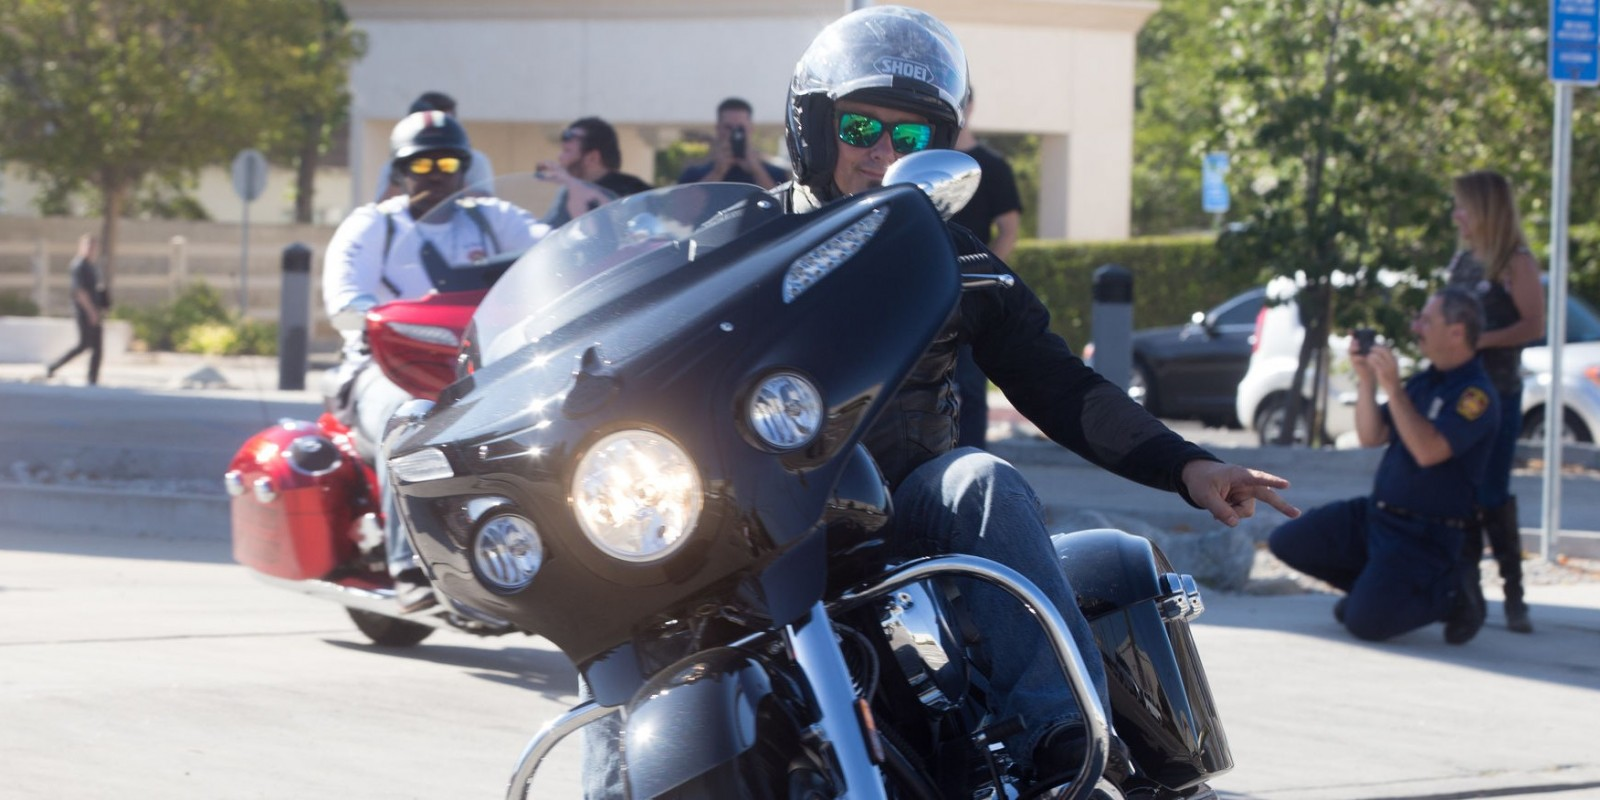 The Veterans Charity Ride 2017 left Los Angeles enroute to Sturgis with multiple stops along the way with the help of Monster Energy.